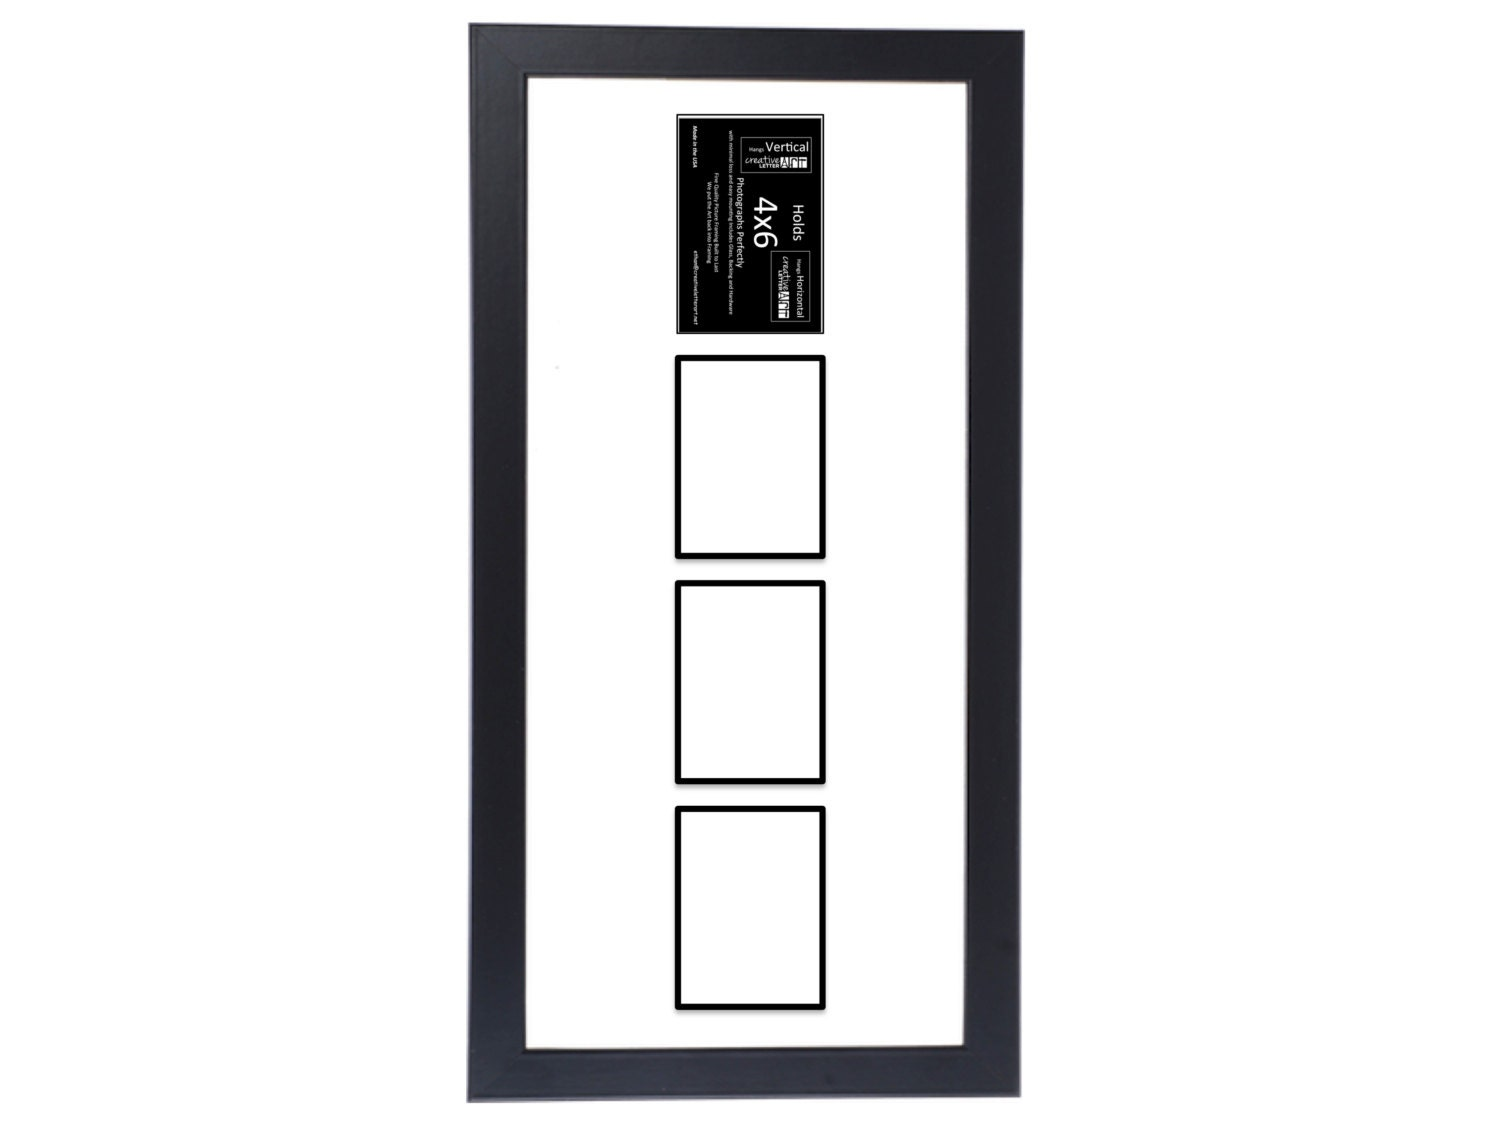 4x6 Vertical 3 4 5 6 7 8 Opening Black Picture Frame With